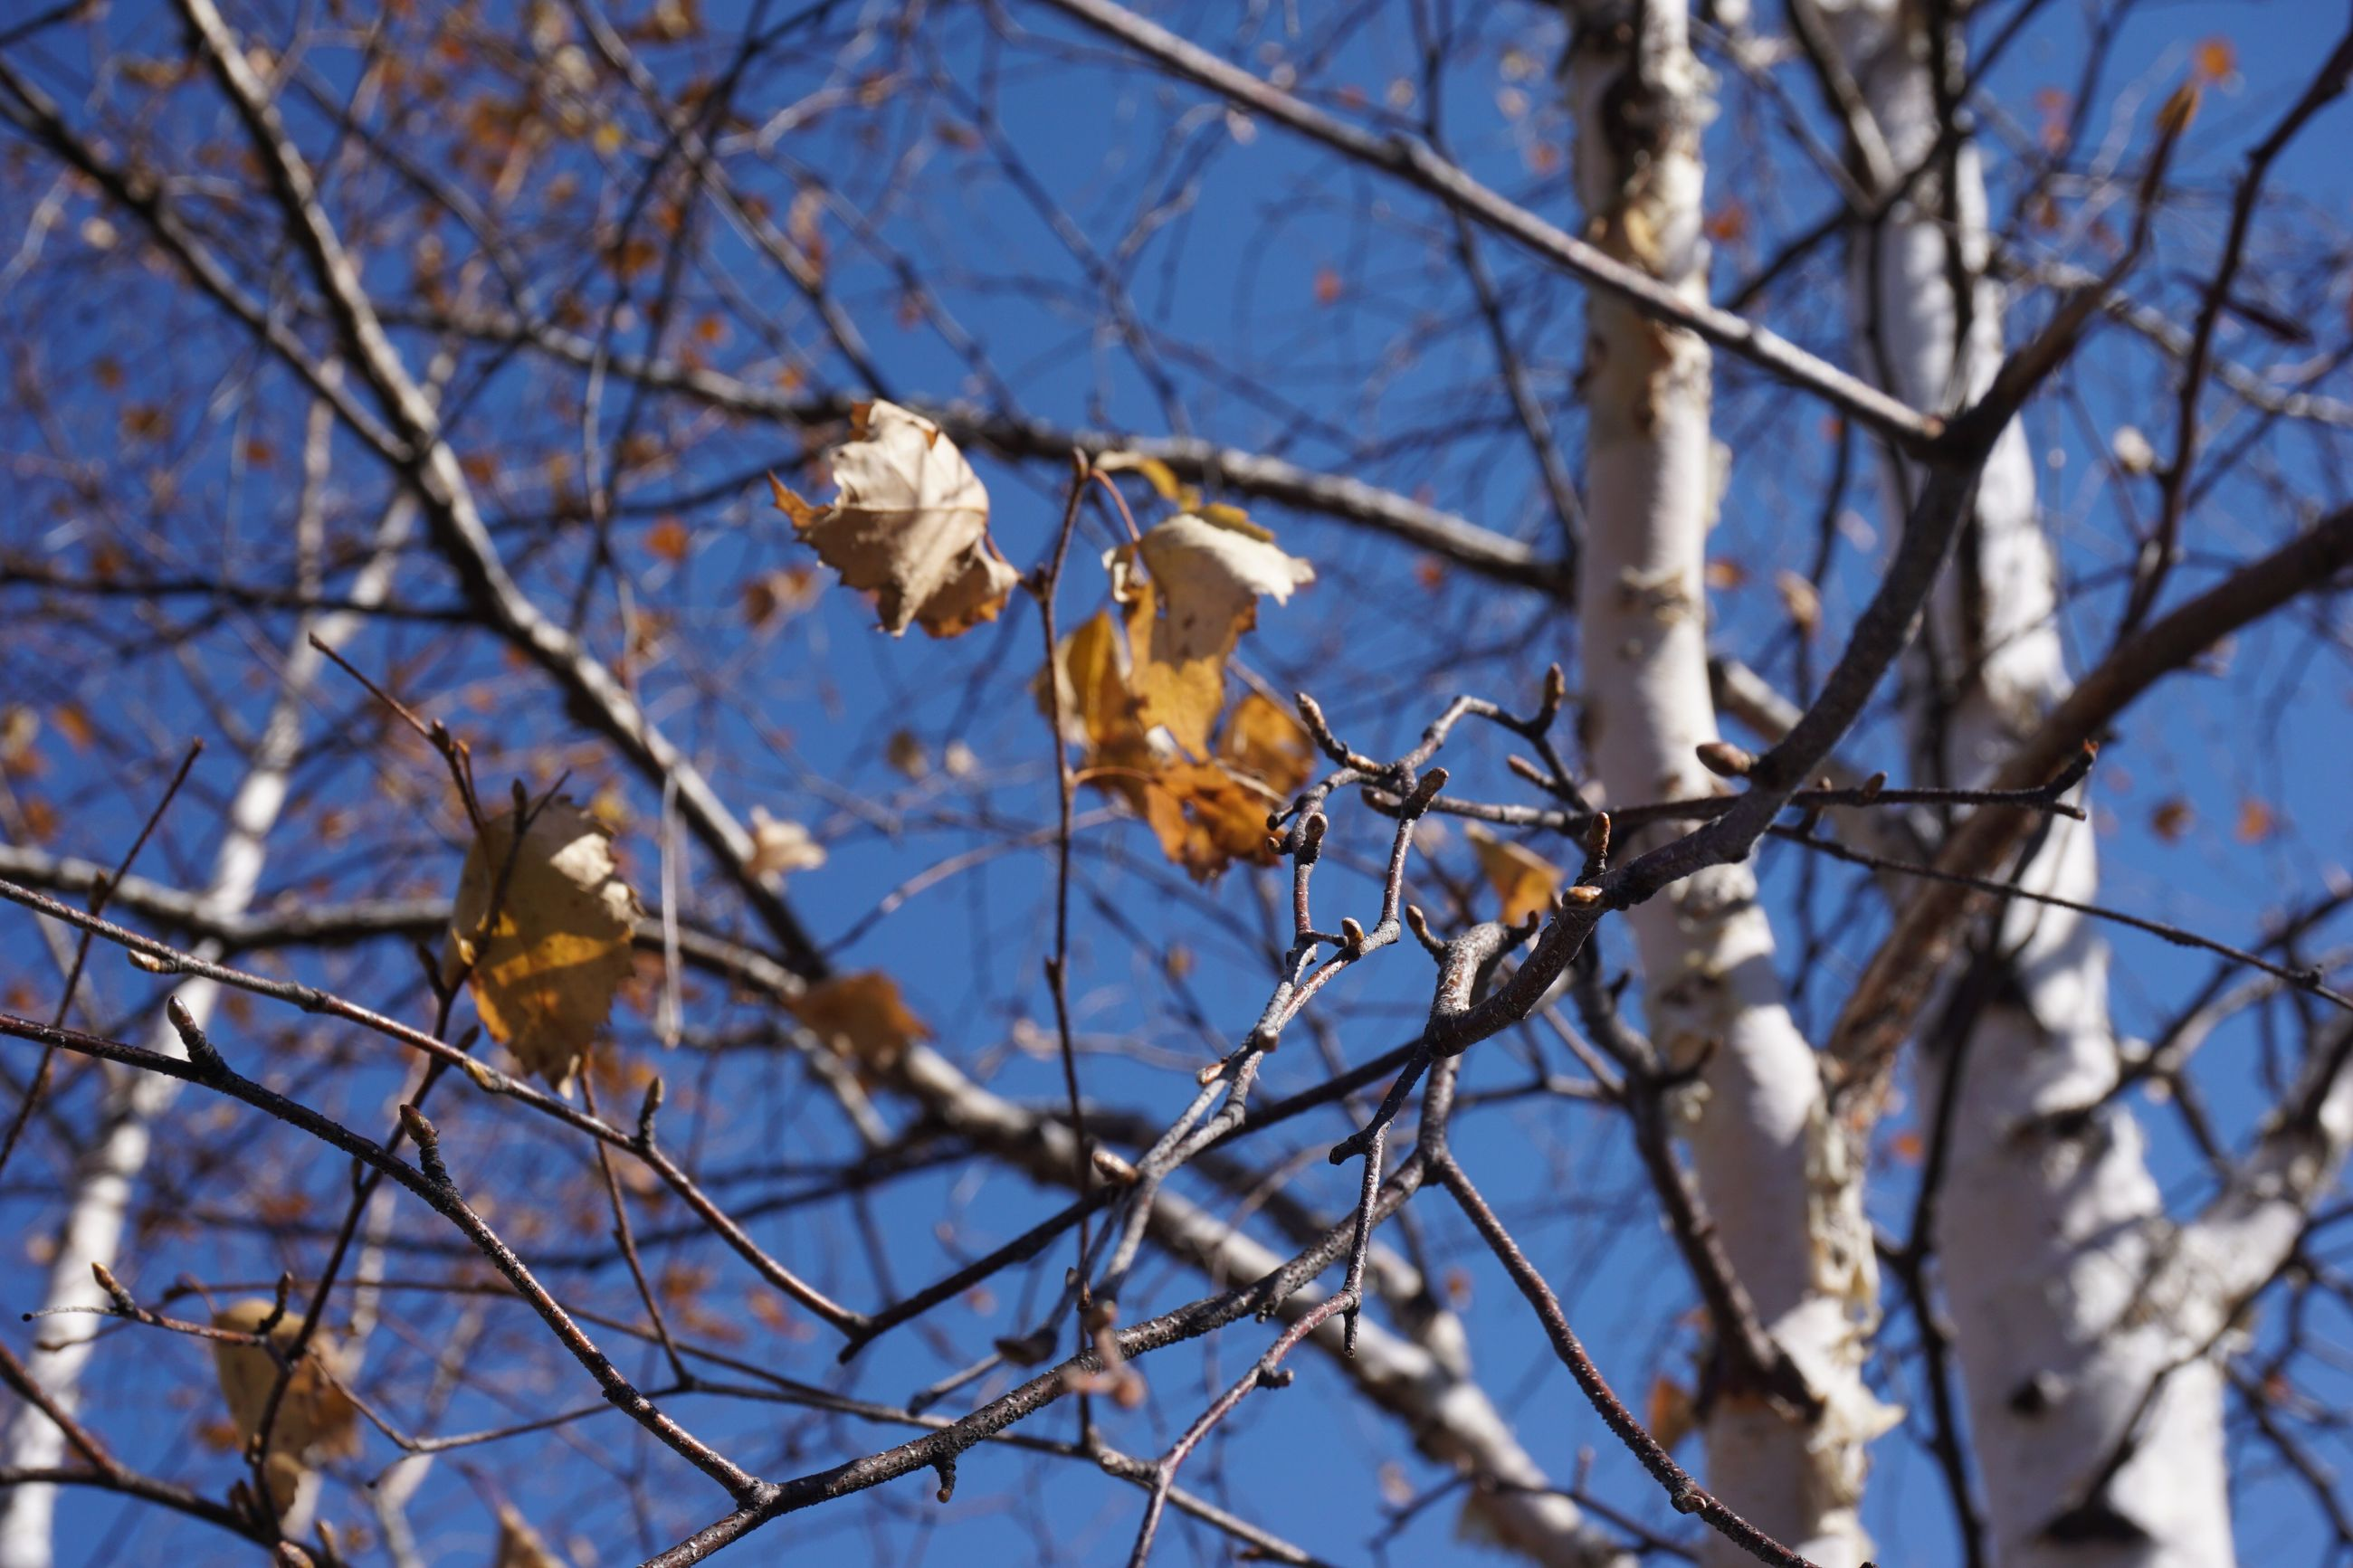 branch, tree, low angle view, growth, nature, beauty in nature, blue, flower, clear sky, bare tree, season, sky, twig, focus on foreground, freshness, close-up, fragility, outdoors, blossom, day